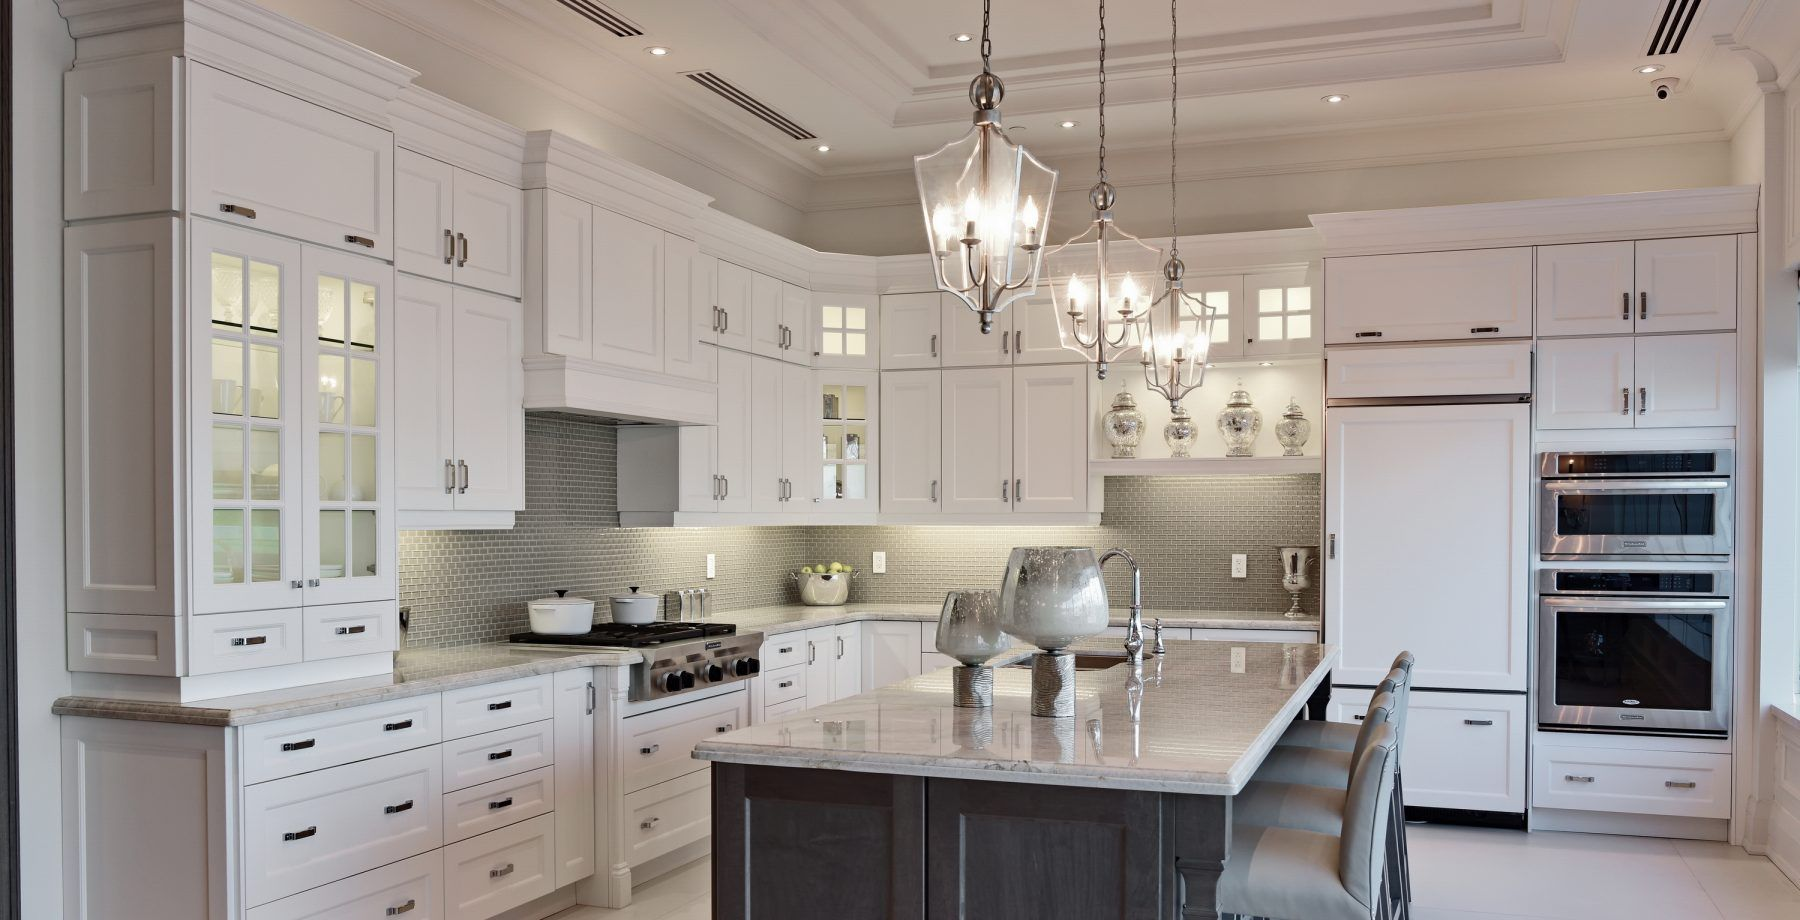 Home Selba Kitchens Baths Is A Canadian Based Company Specializing In Custom Kitchen Design We Custom Kitchens Design Kitchen Design Kitchen Design Small